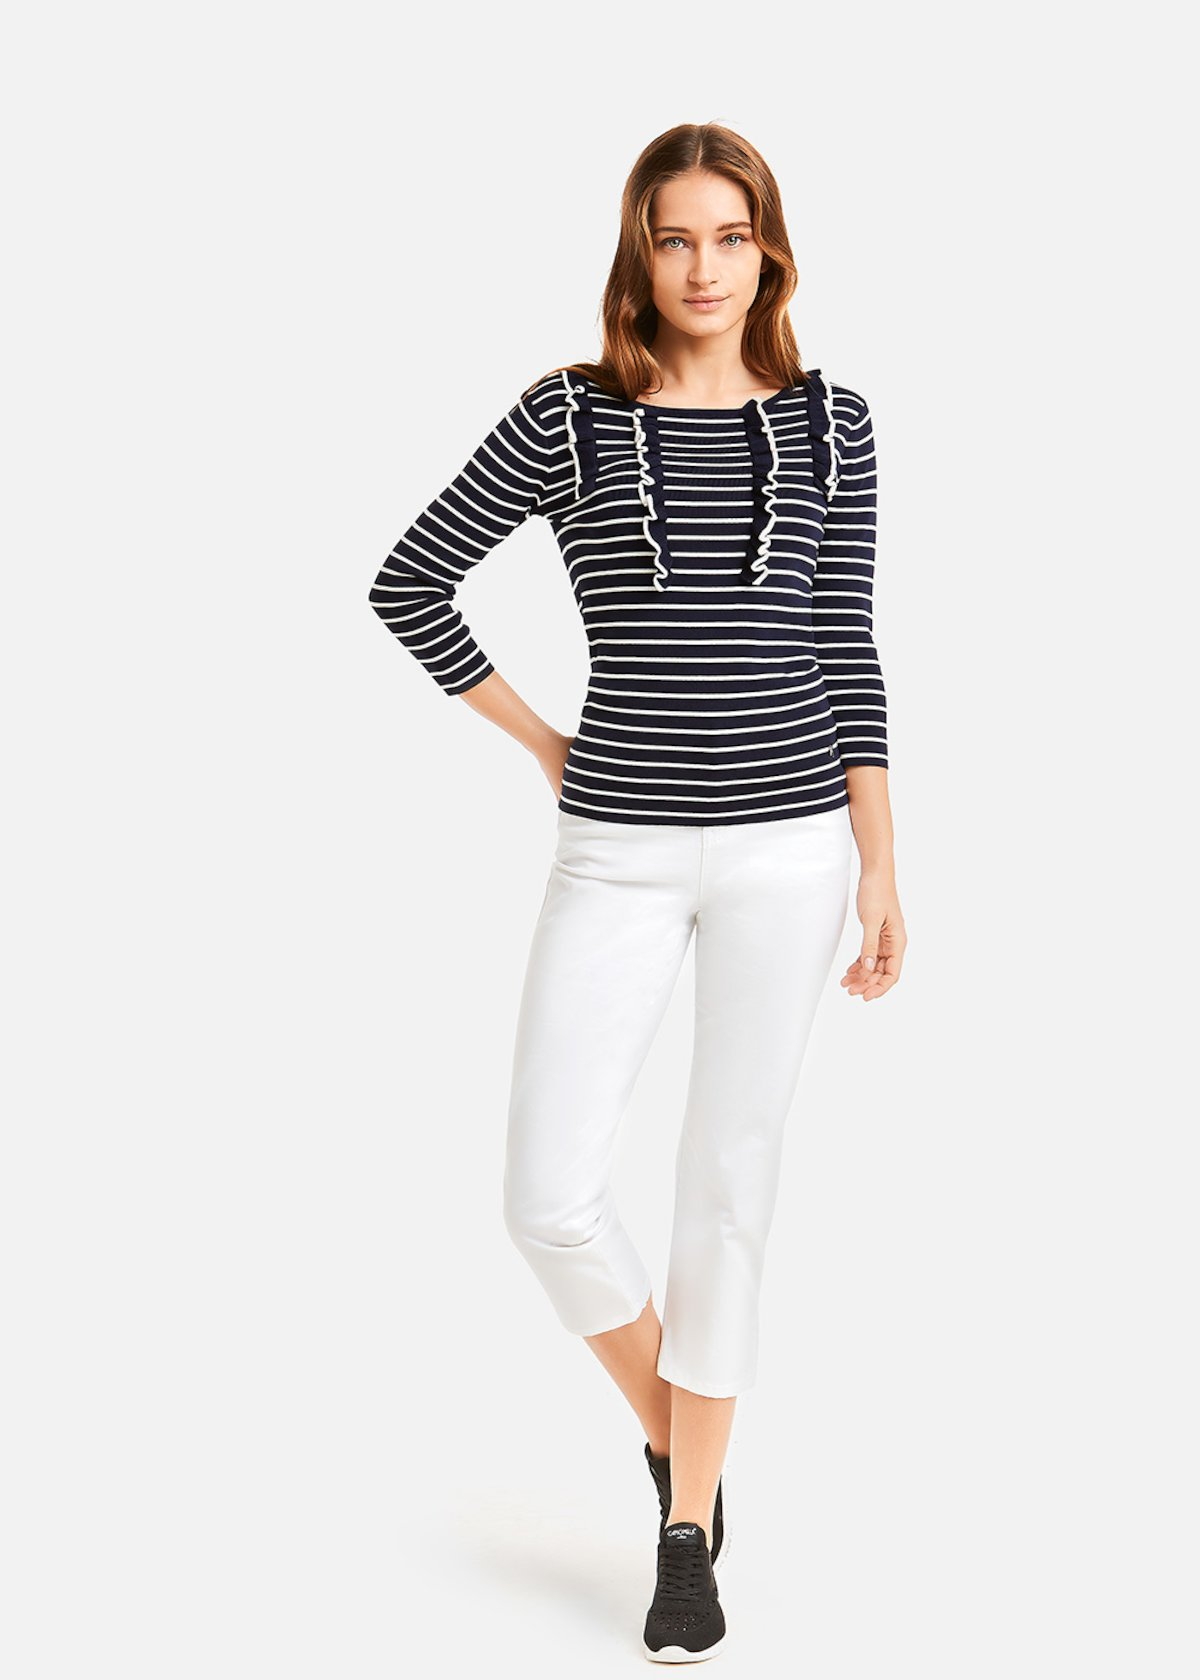 Stripe fantasy jerseywith ruffles - Medium Blue / White Stripes